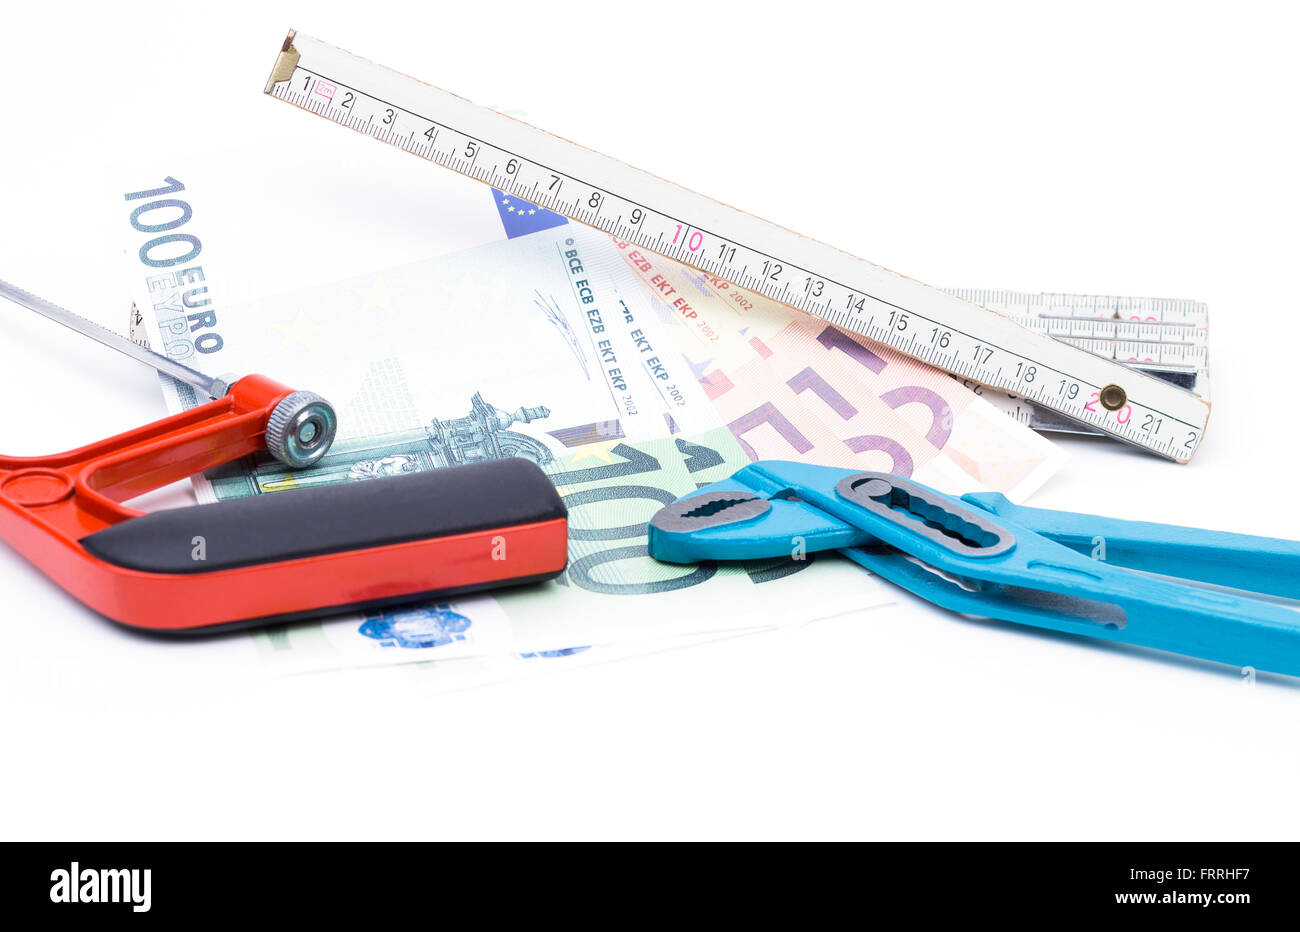 Image shows a yardstick with money and tools isolated on white - Stock Image